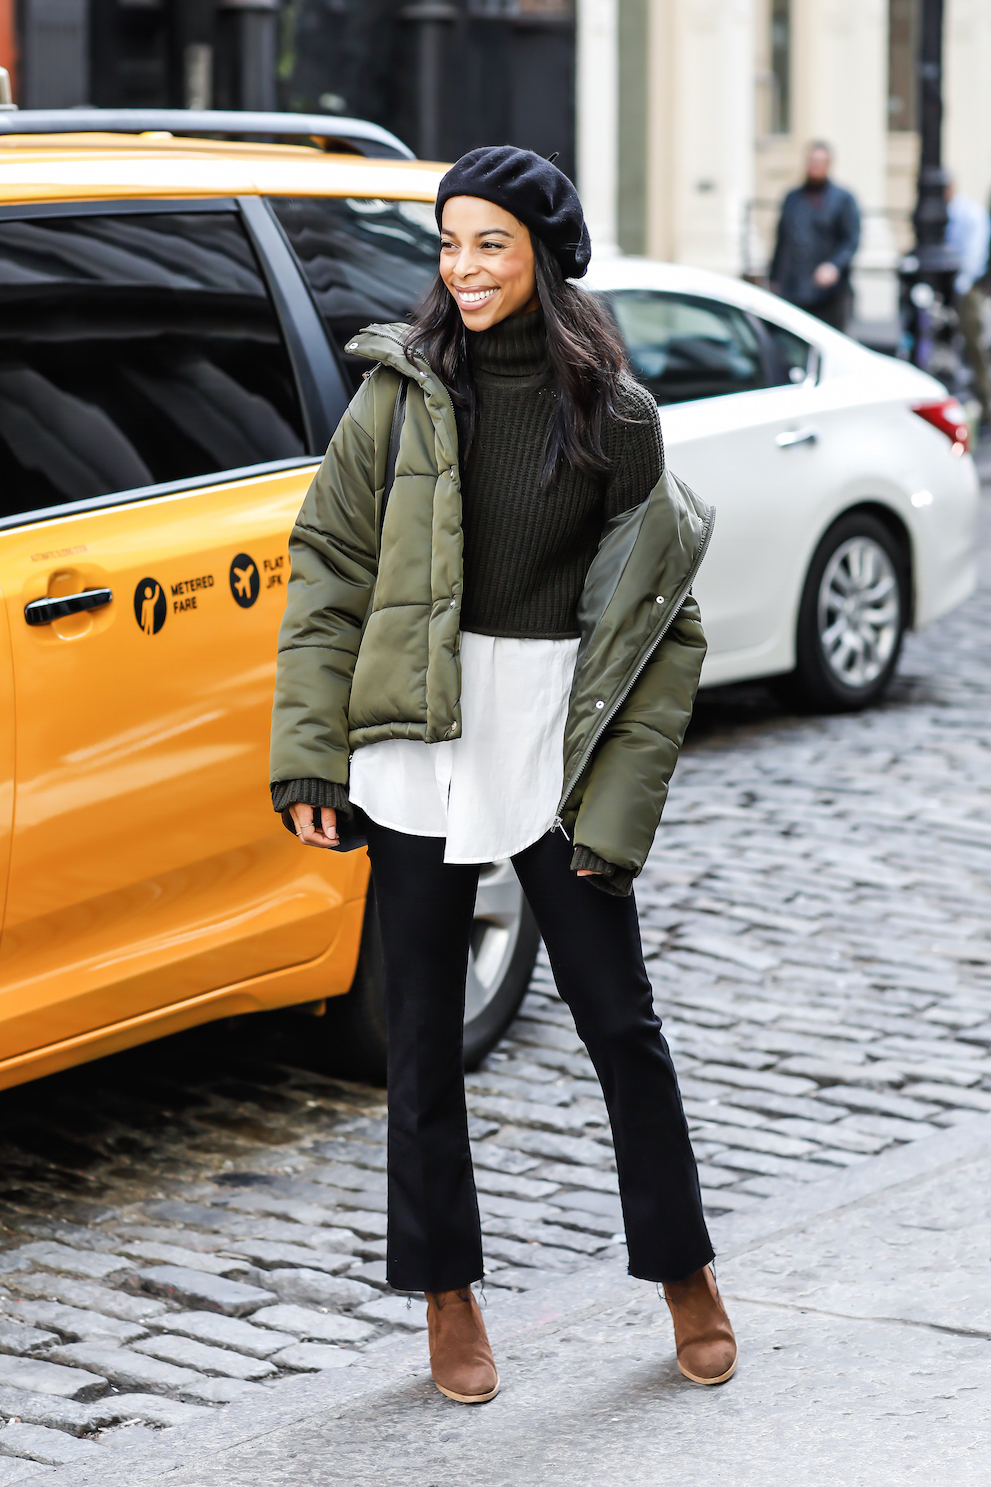 A Polished Way to Wear a Puffer Coat This Winter — Beret, Green Puffer Jacket, Flared Black Jeans, and Brown Boots